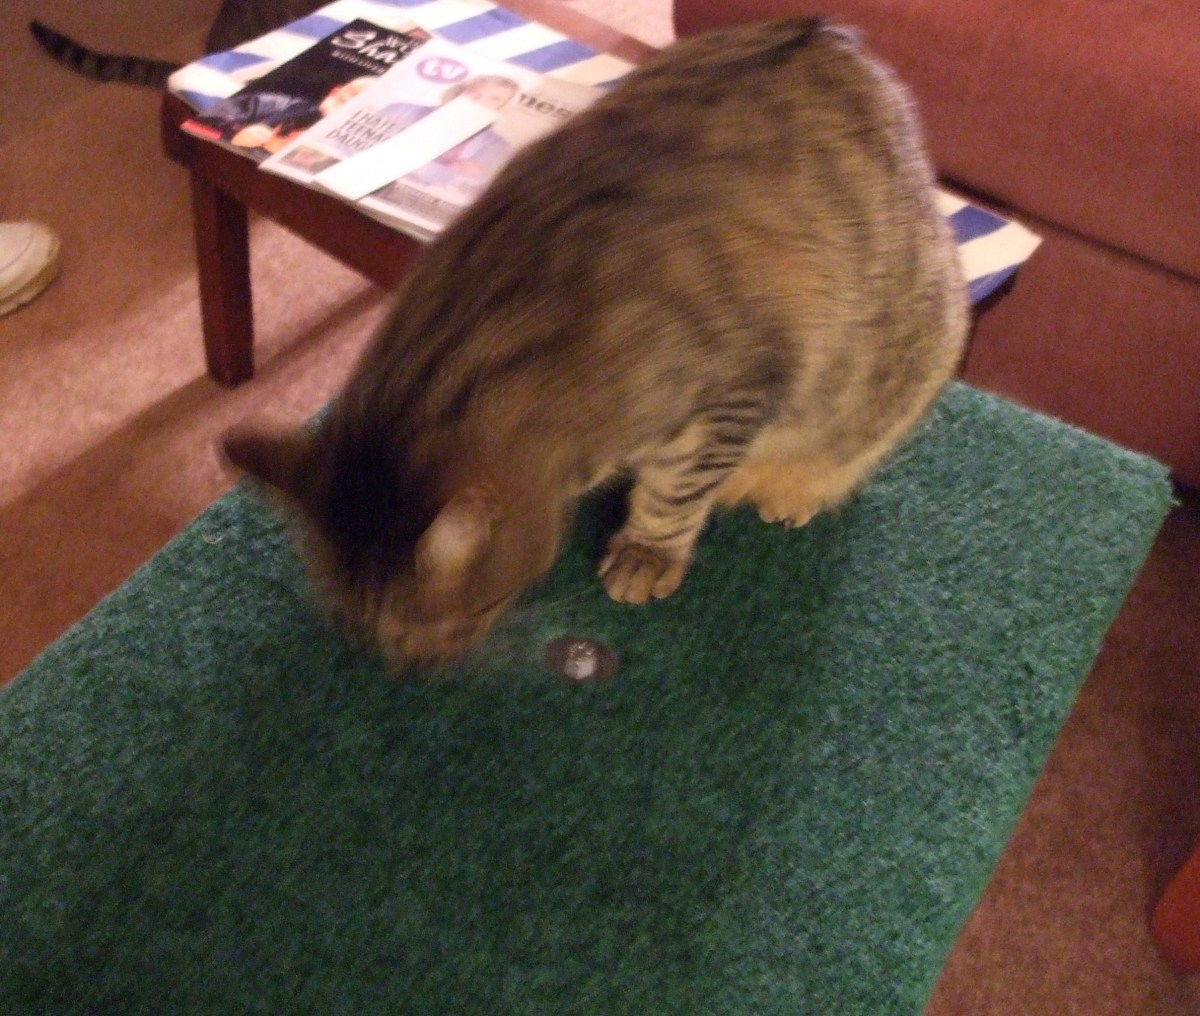 Skeeter, my most adventurous cat, puts the new large platform through its paces.